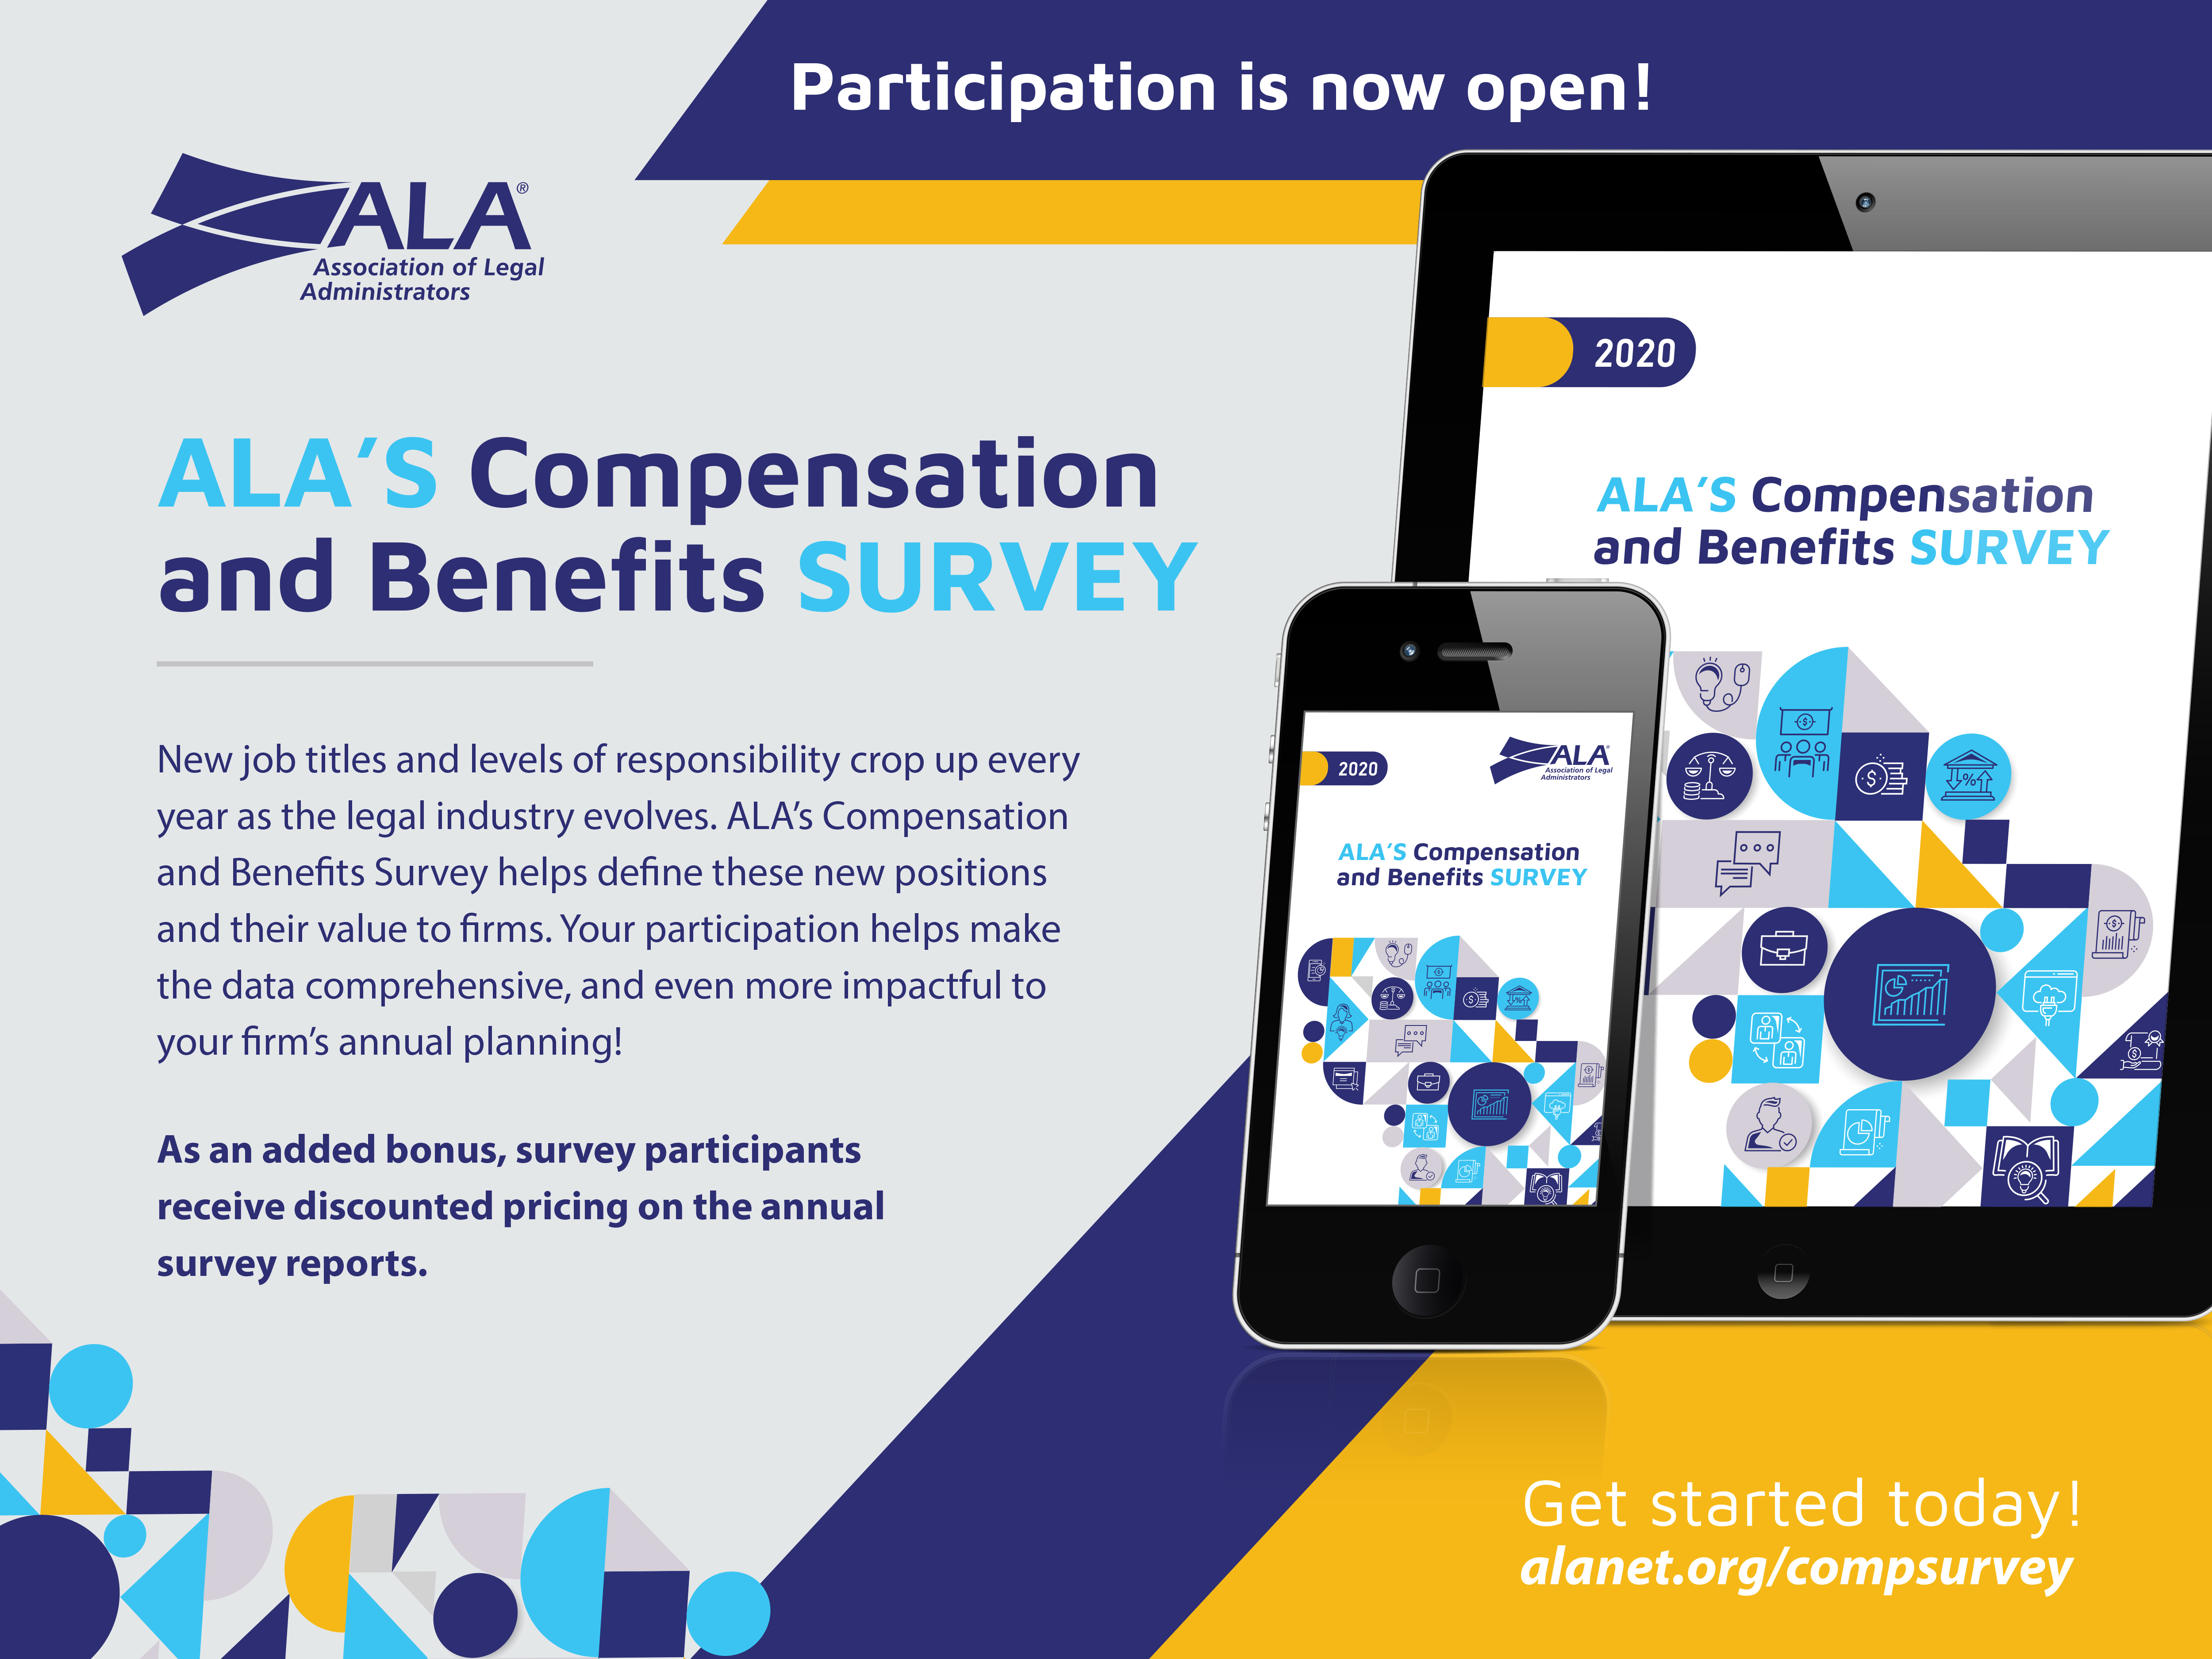 Compensation and Benefits Survey